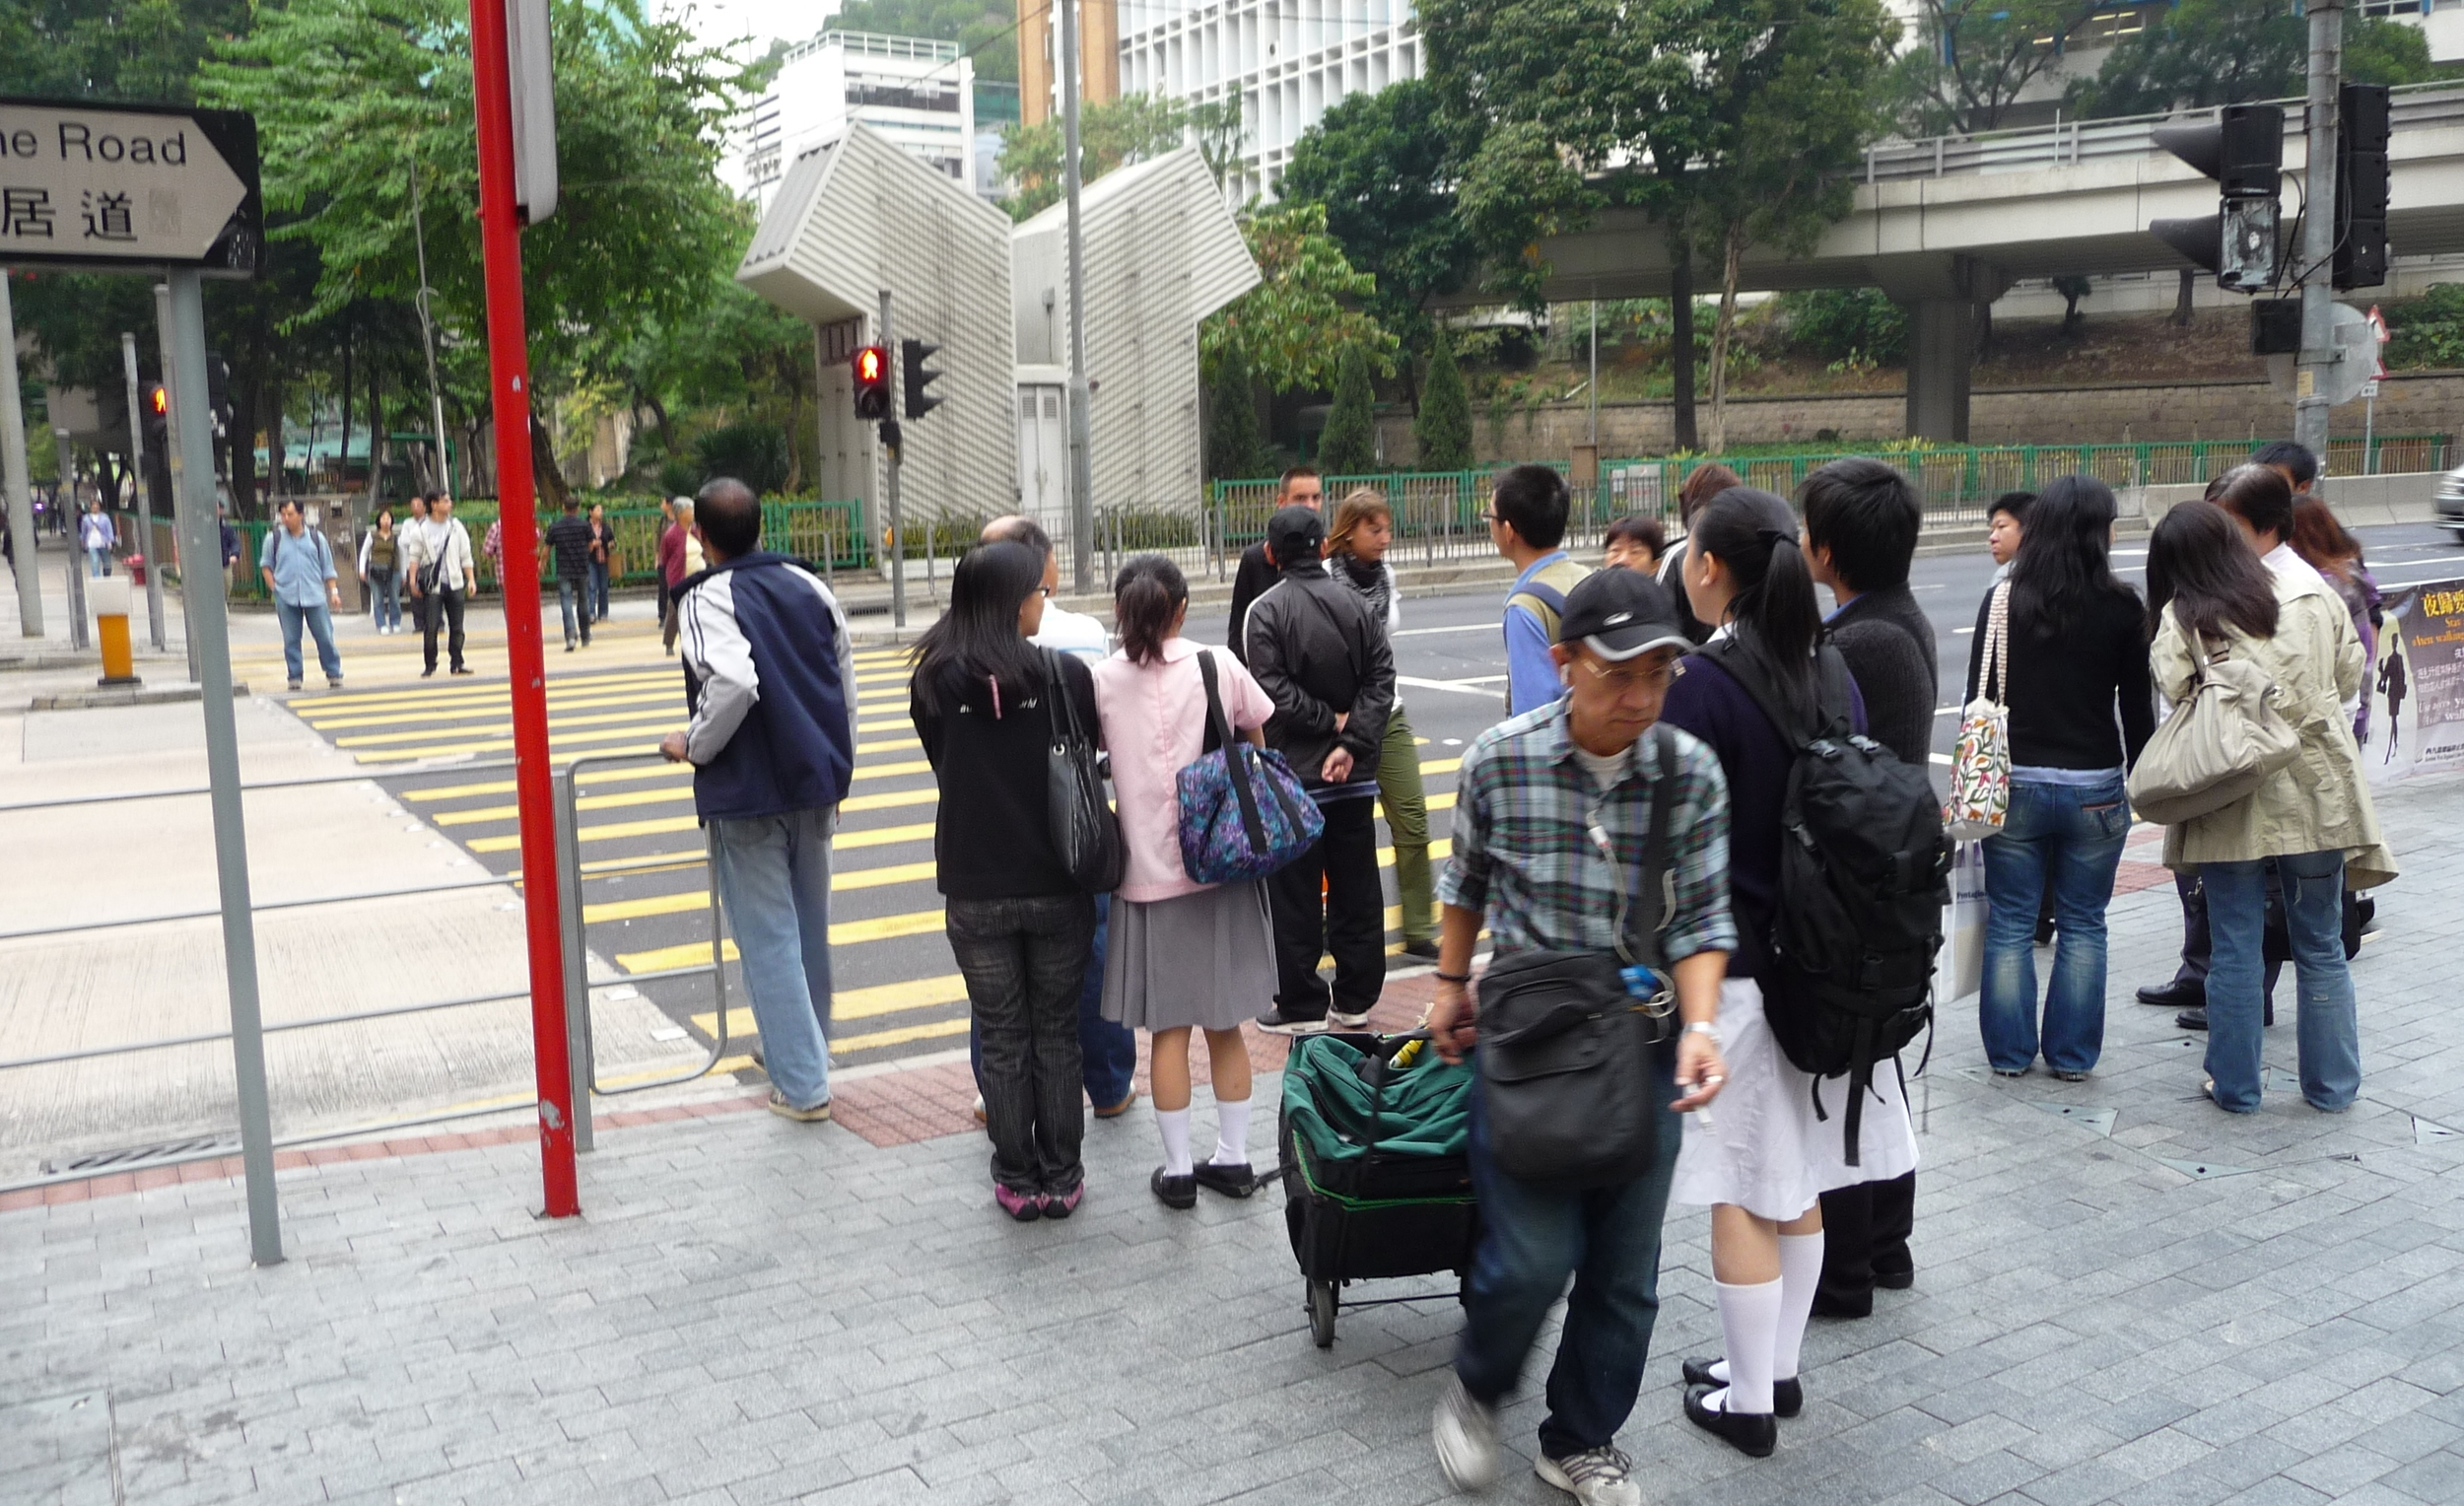 Which way is traffic coming from? It's Hong kong, which used to be British, so the cars are coming from your right. If this were Mainland China, they'd be coming from your left.